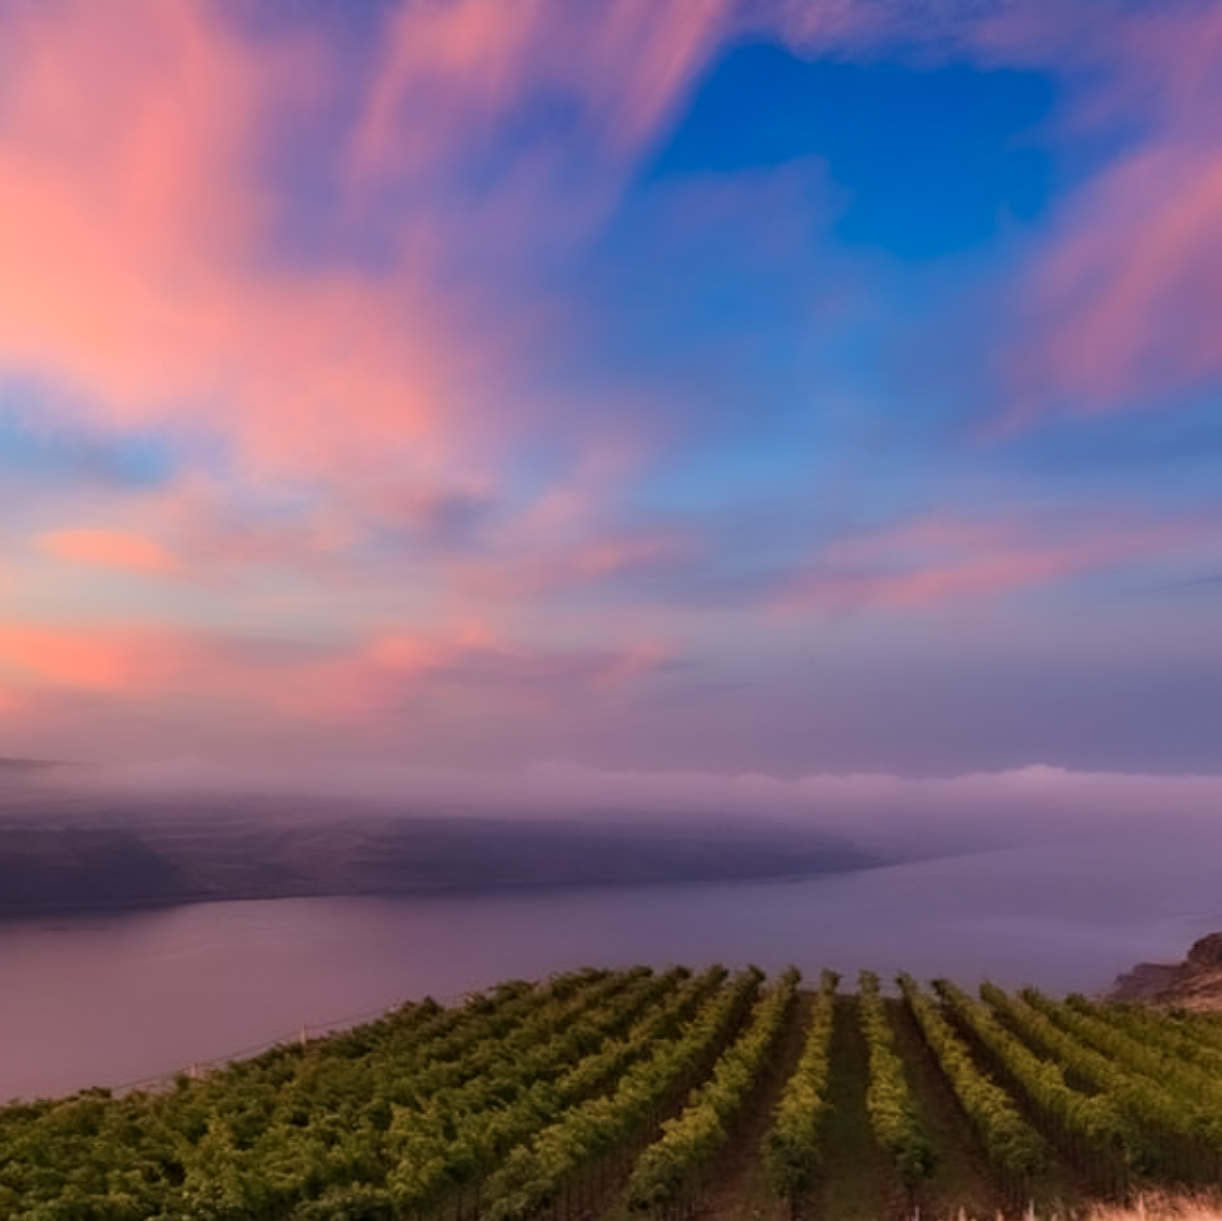 Green rows of grape vines on a cliff that drops off toward the broad river below. The sky is tinted purple, peach, and blue from the sunset, and a low bank of clouds hugs the river.